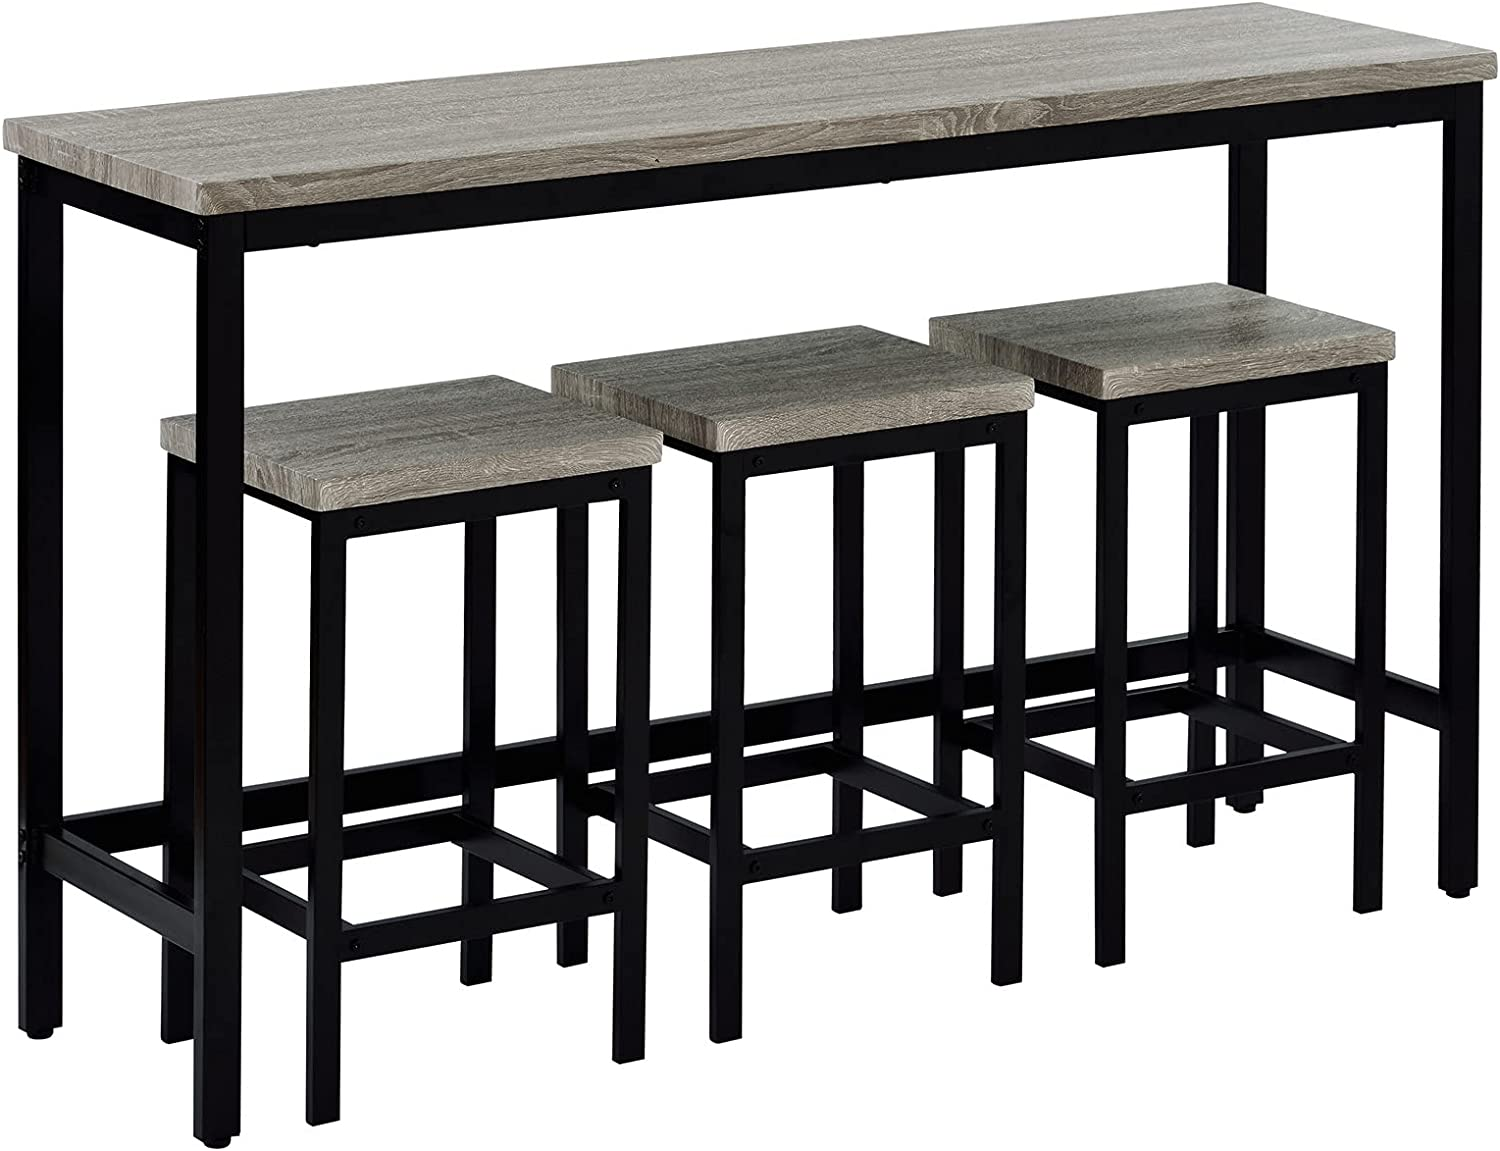 YEAR COLOR Industrial Counter Height Dining Table Set Kitchen Dining Table, 4 Piece Side Table Set with Footrest and 3 Stools Pub, Metal Frame Pub Table Set for Home, Kitchen, Pub, Dining Room (Gray)